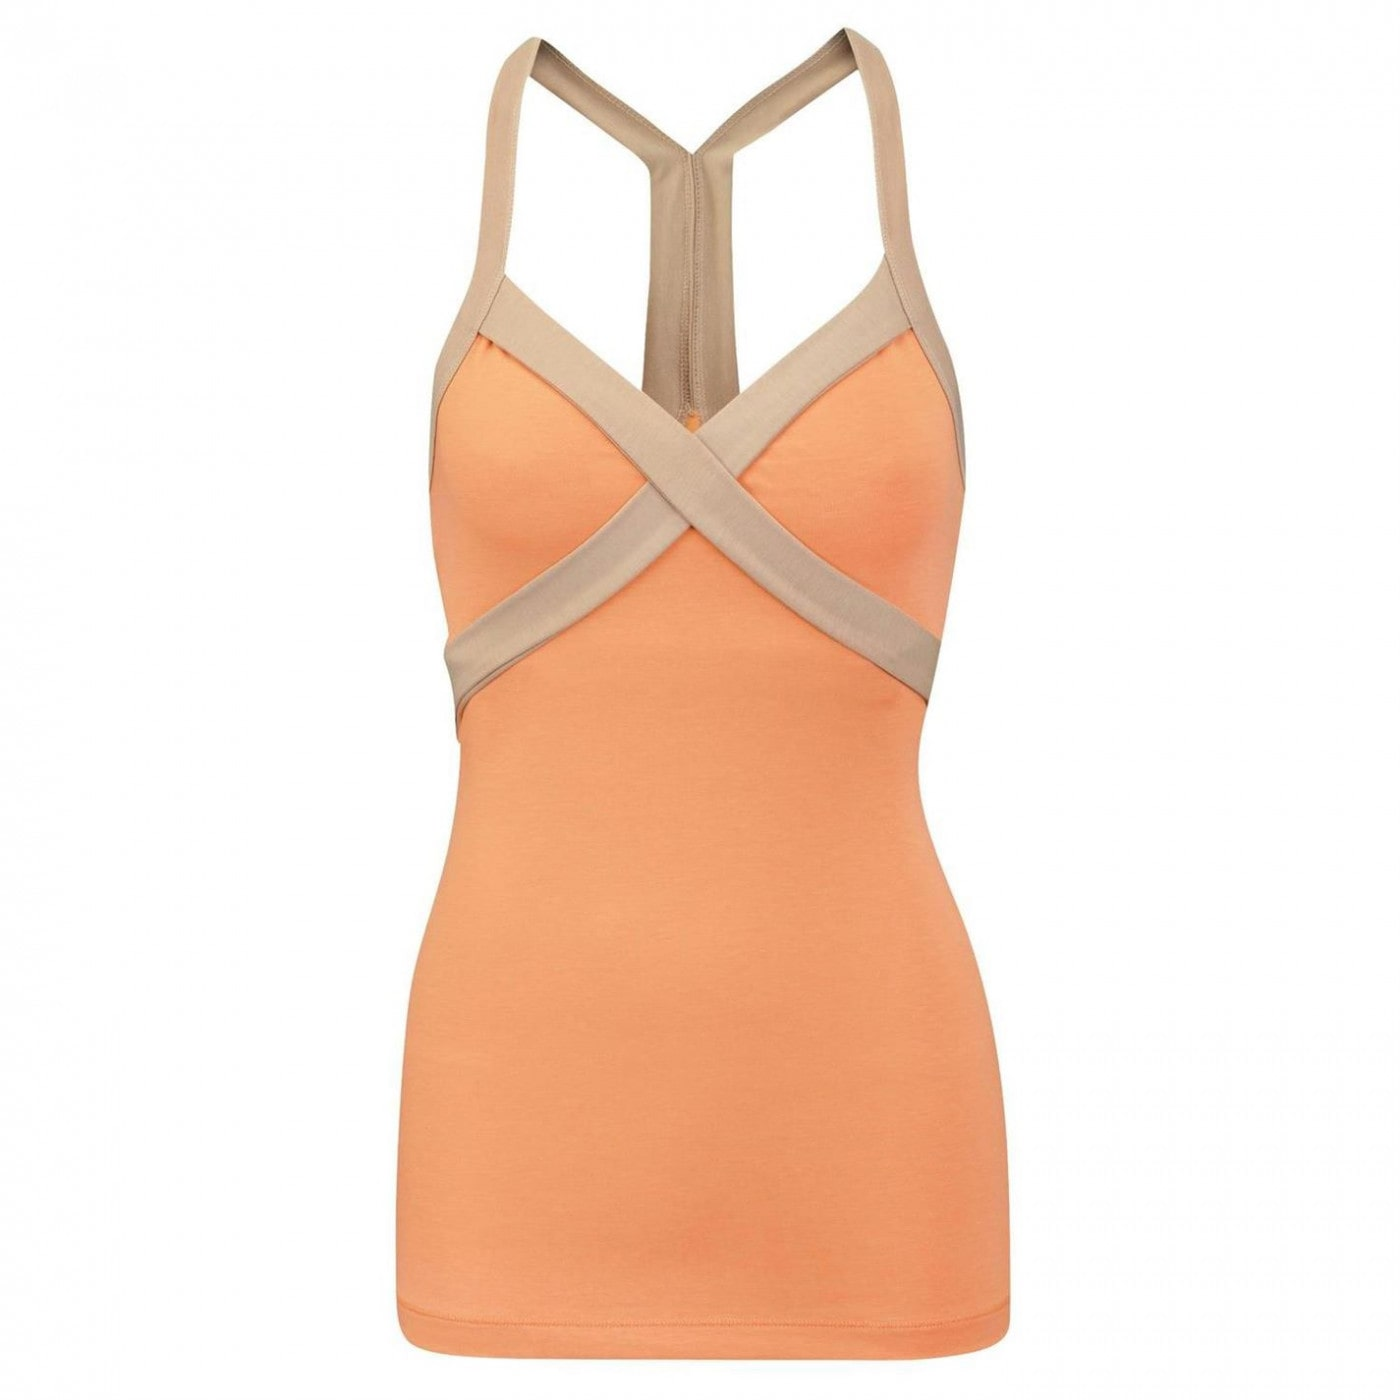 Wellicious Cross it Tank